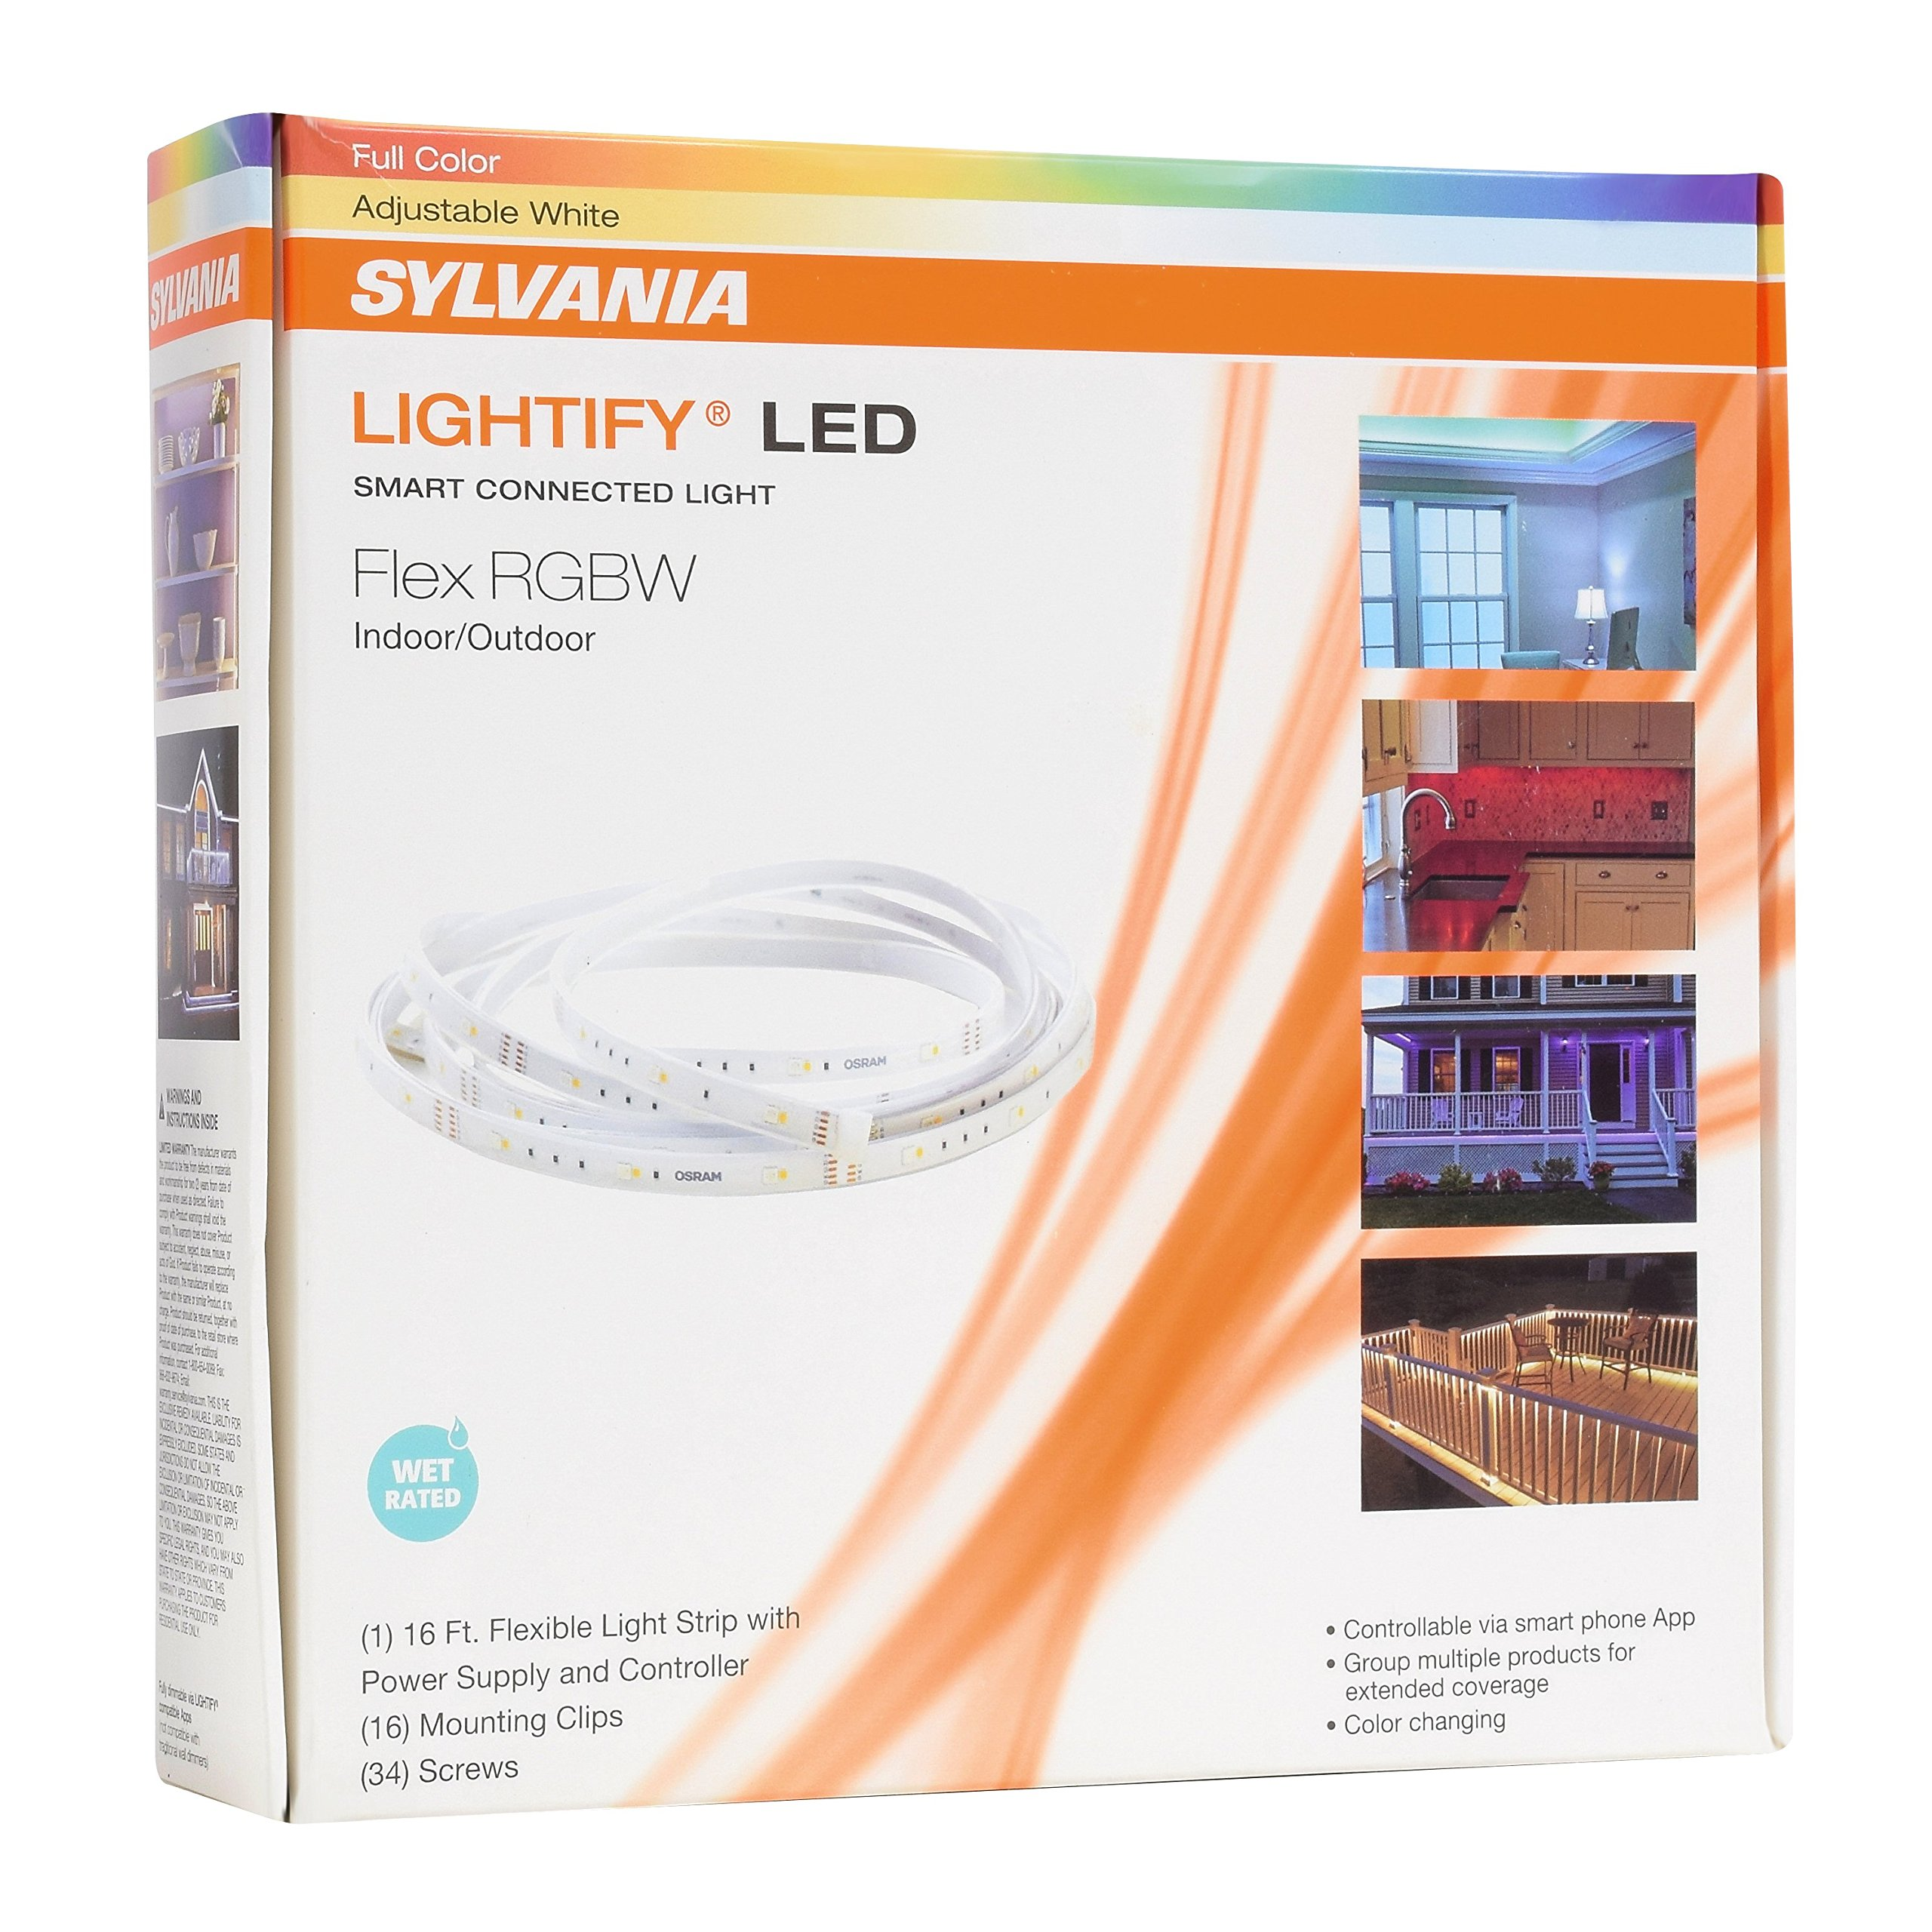 Sylvania lightify by osram led flex light strip rgbw for smart sylvania lightify by osram led flex light strip rgbw for smart home connected adjustable warm white to daylight color works with alexa requires aloadofball Choice Image